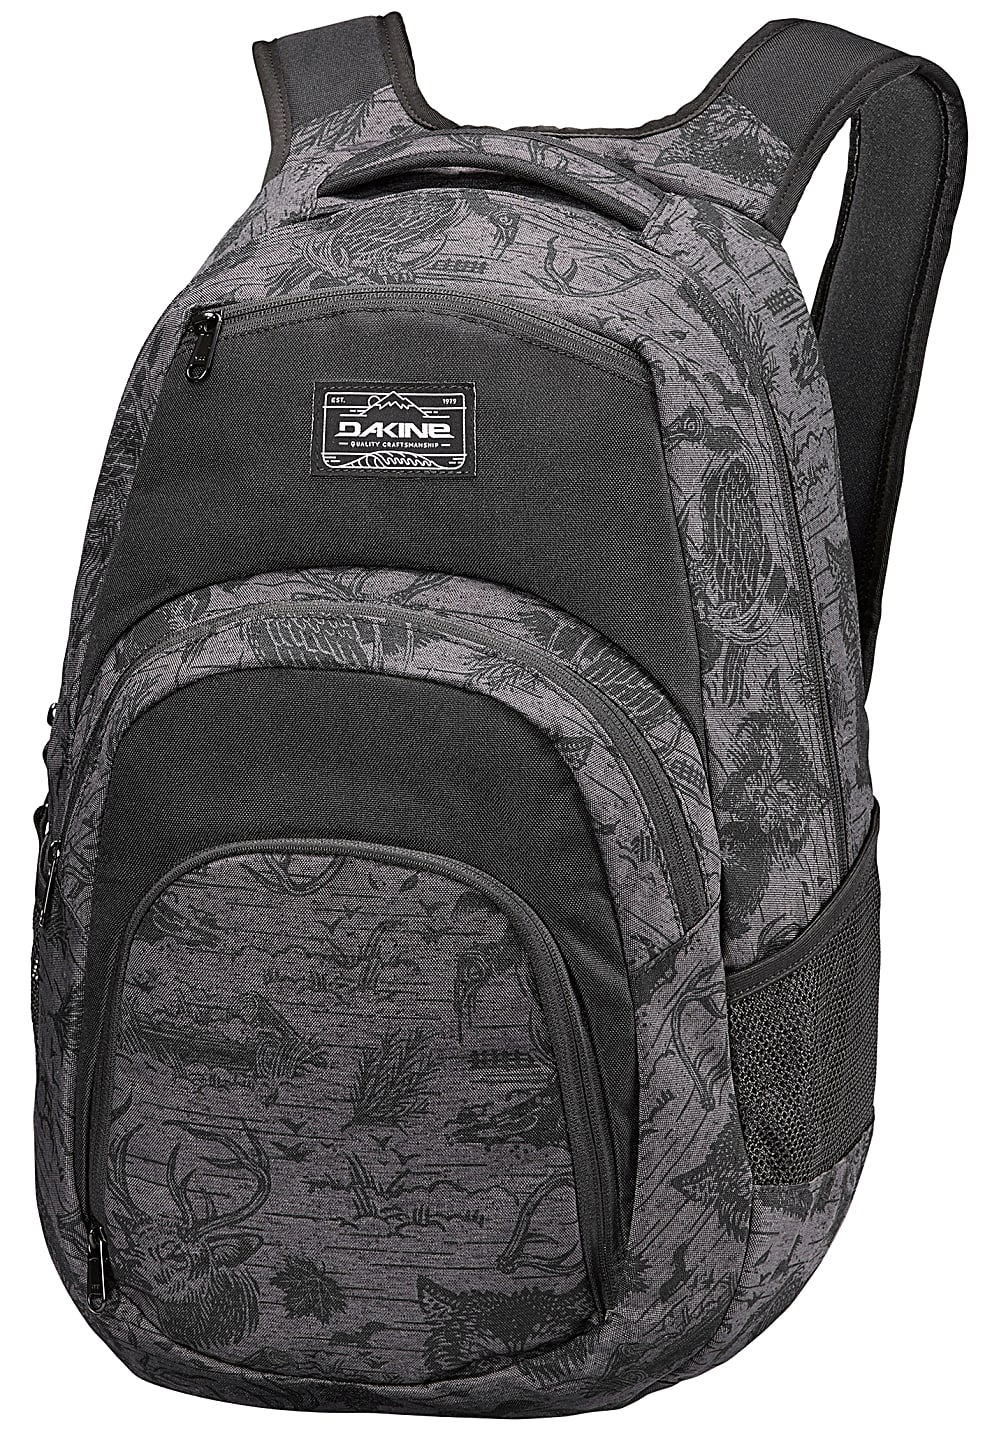 dakine campus 33l rucksack f r herren grau herren taschen geldb rsen. Black Bedroom Furniture Sets. Home Design Ideas